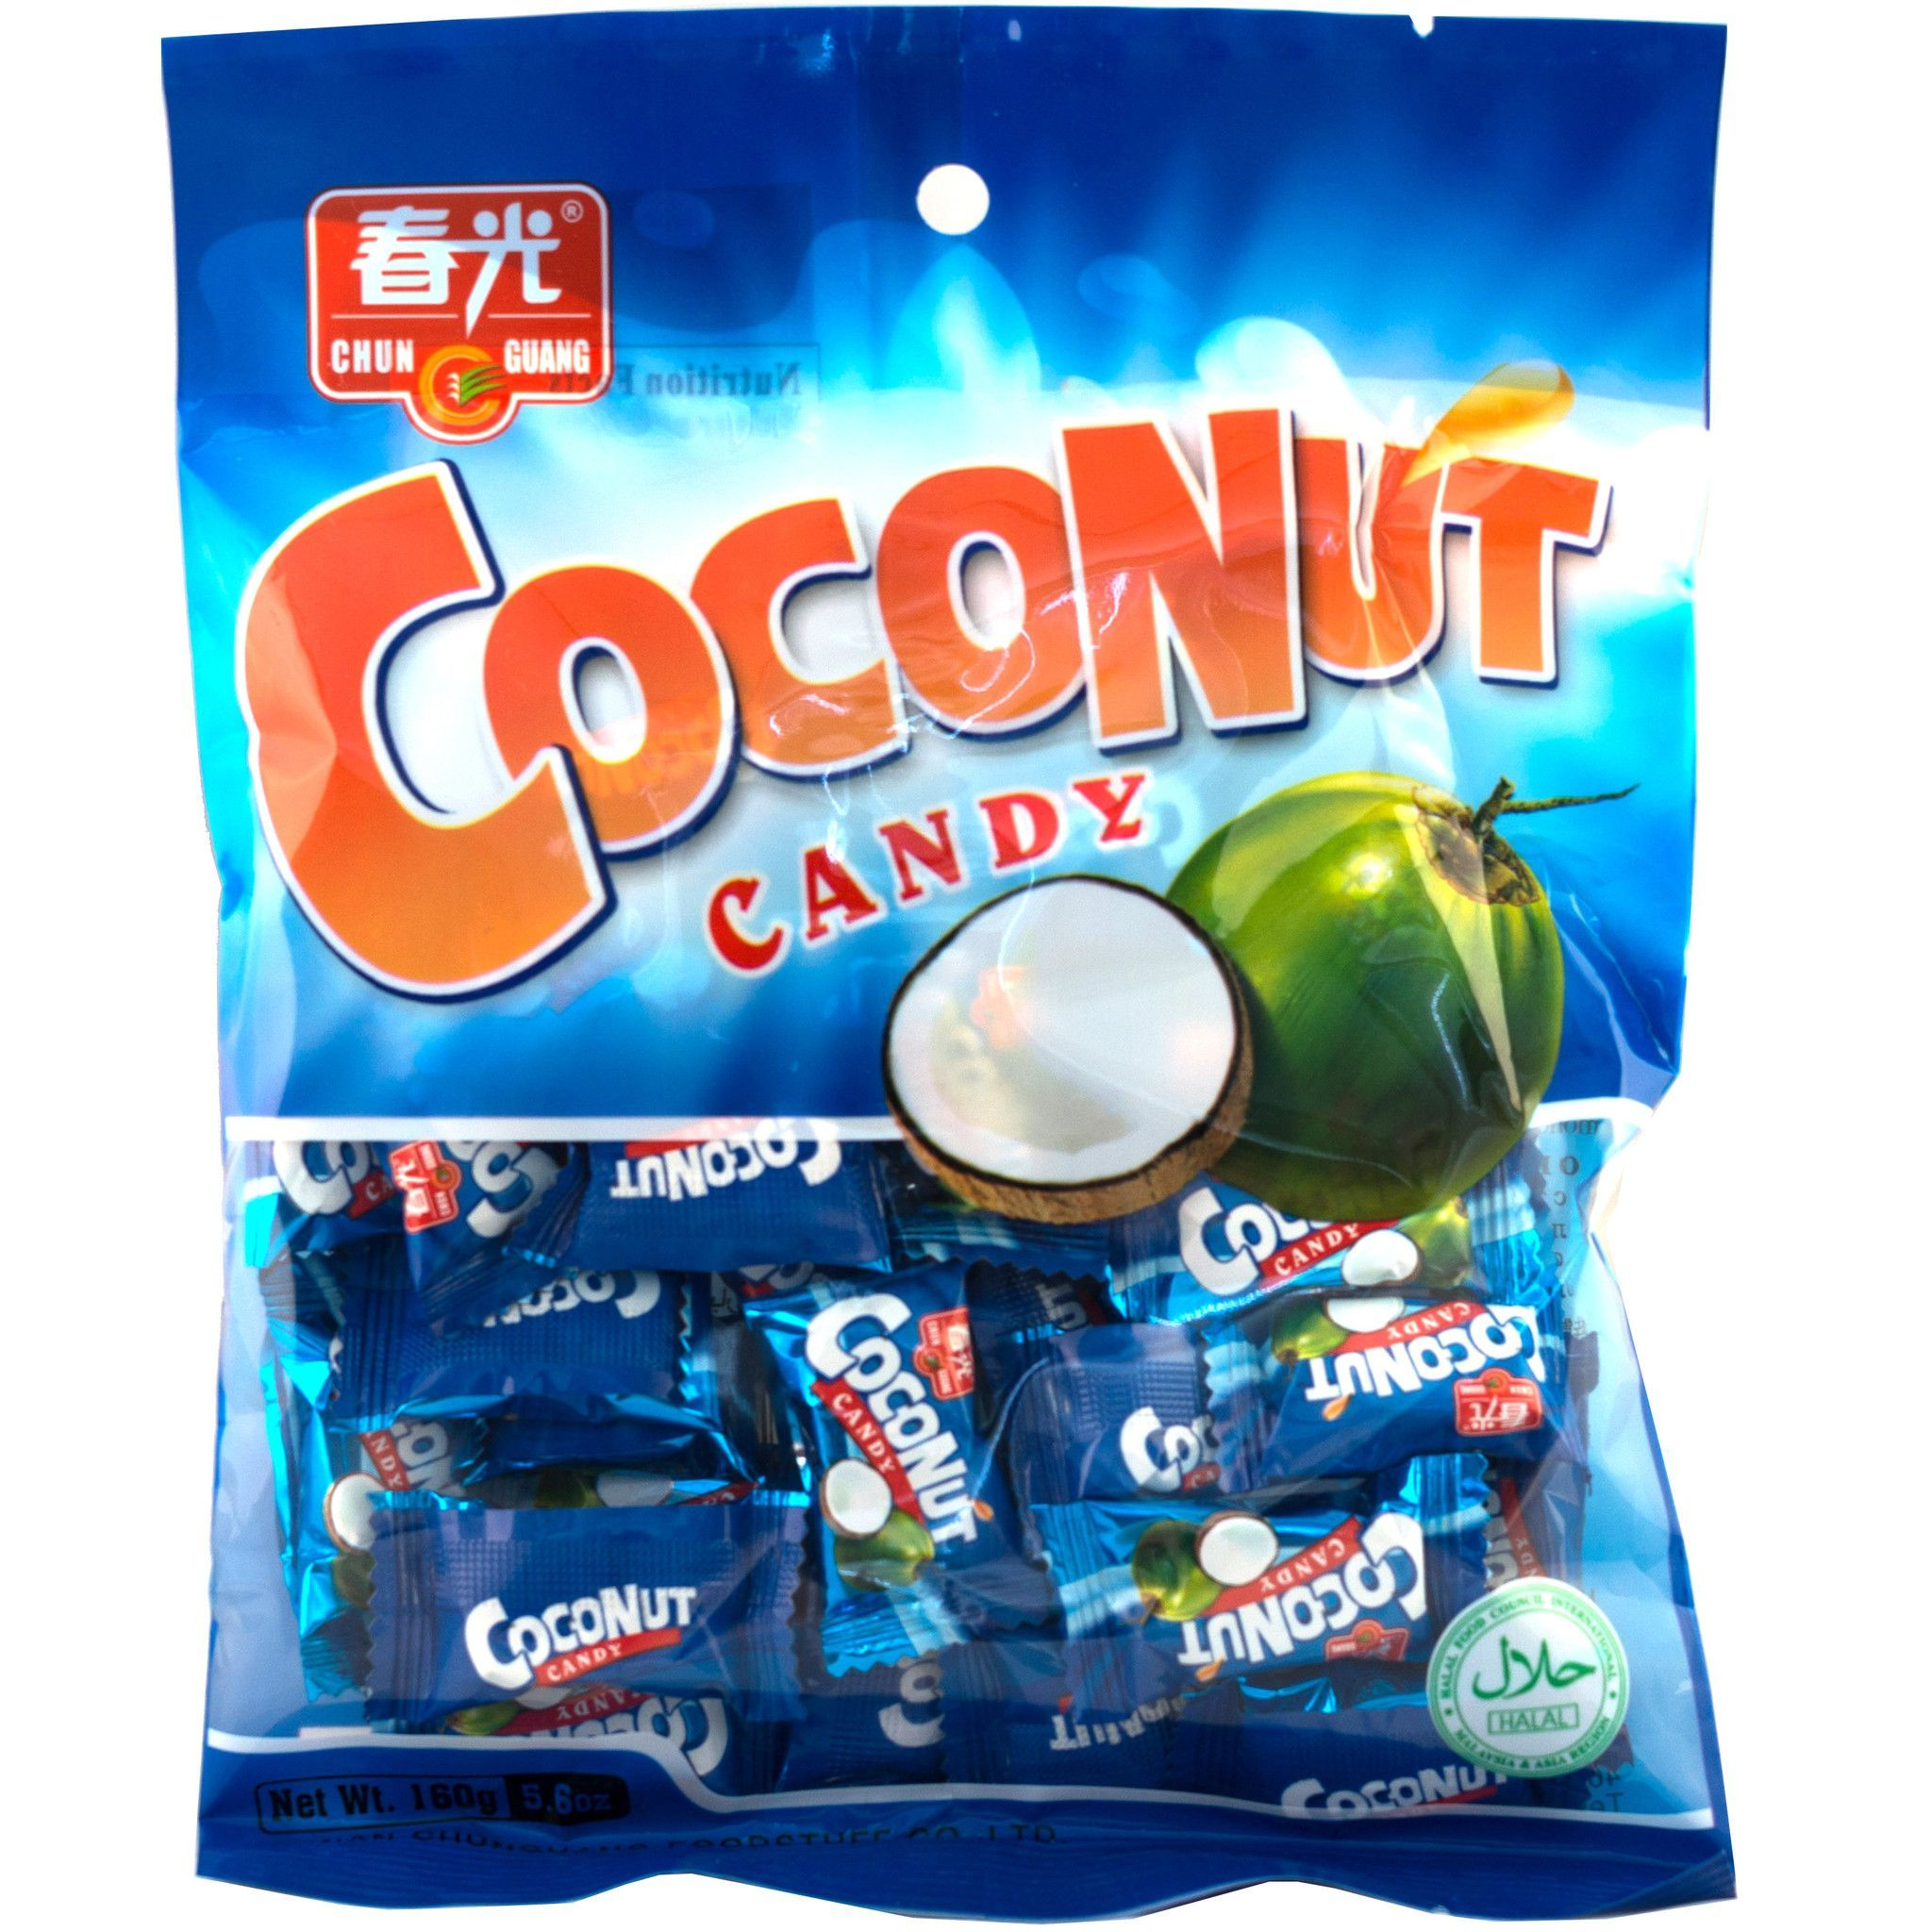 Chun Guang Coconut Hard Candy | Products | Hard candy, Candy